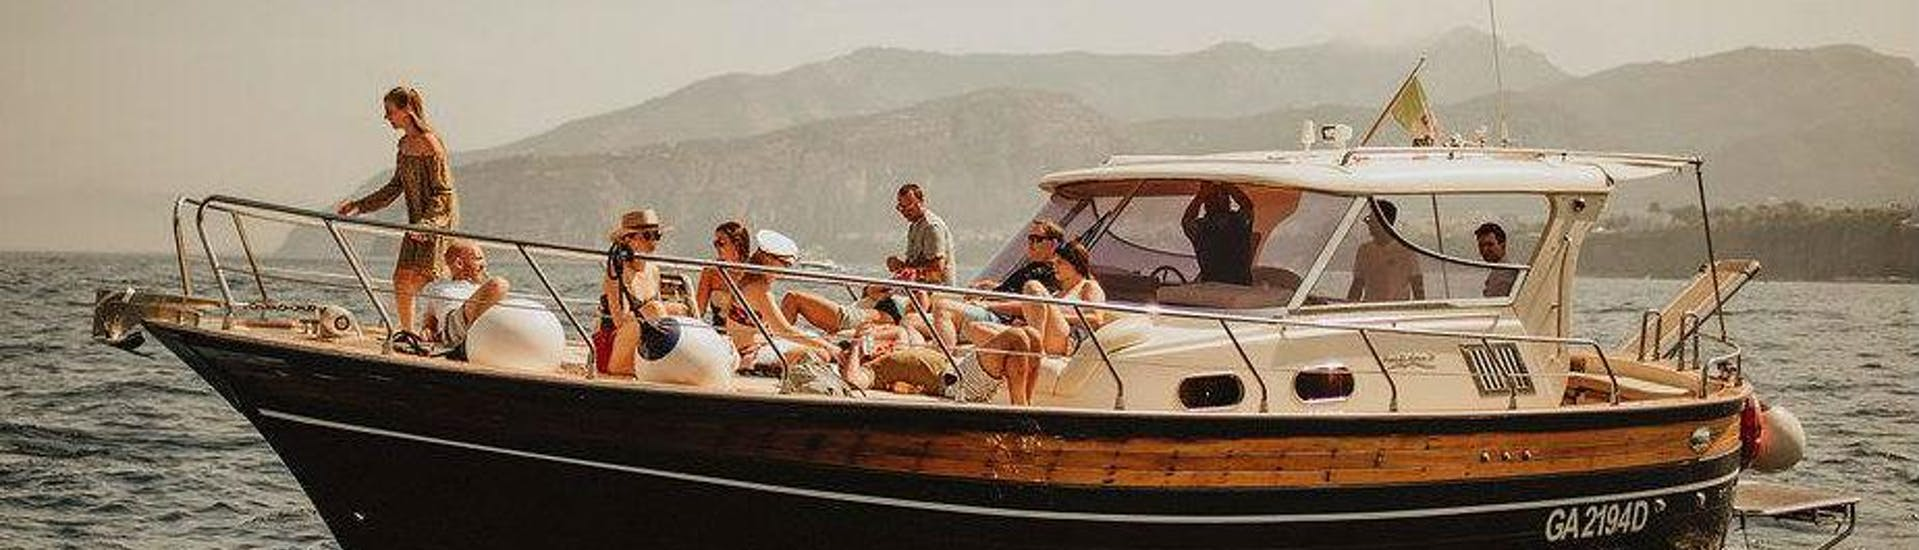 Boat Trip from Sorrento to Capri for Small Groups